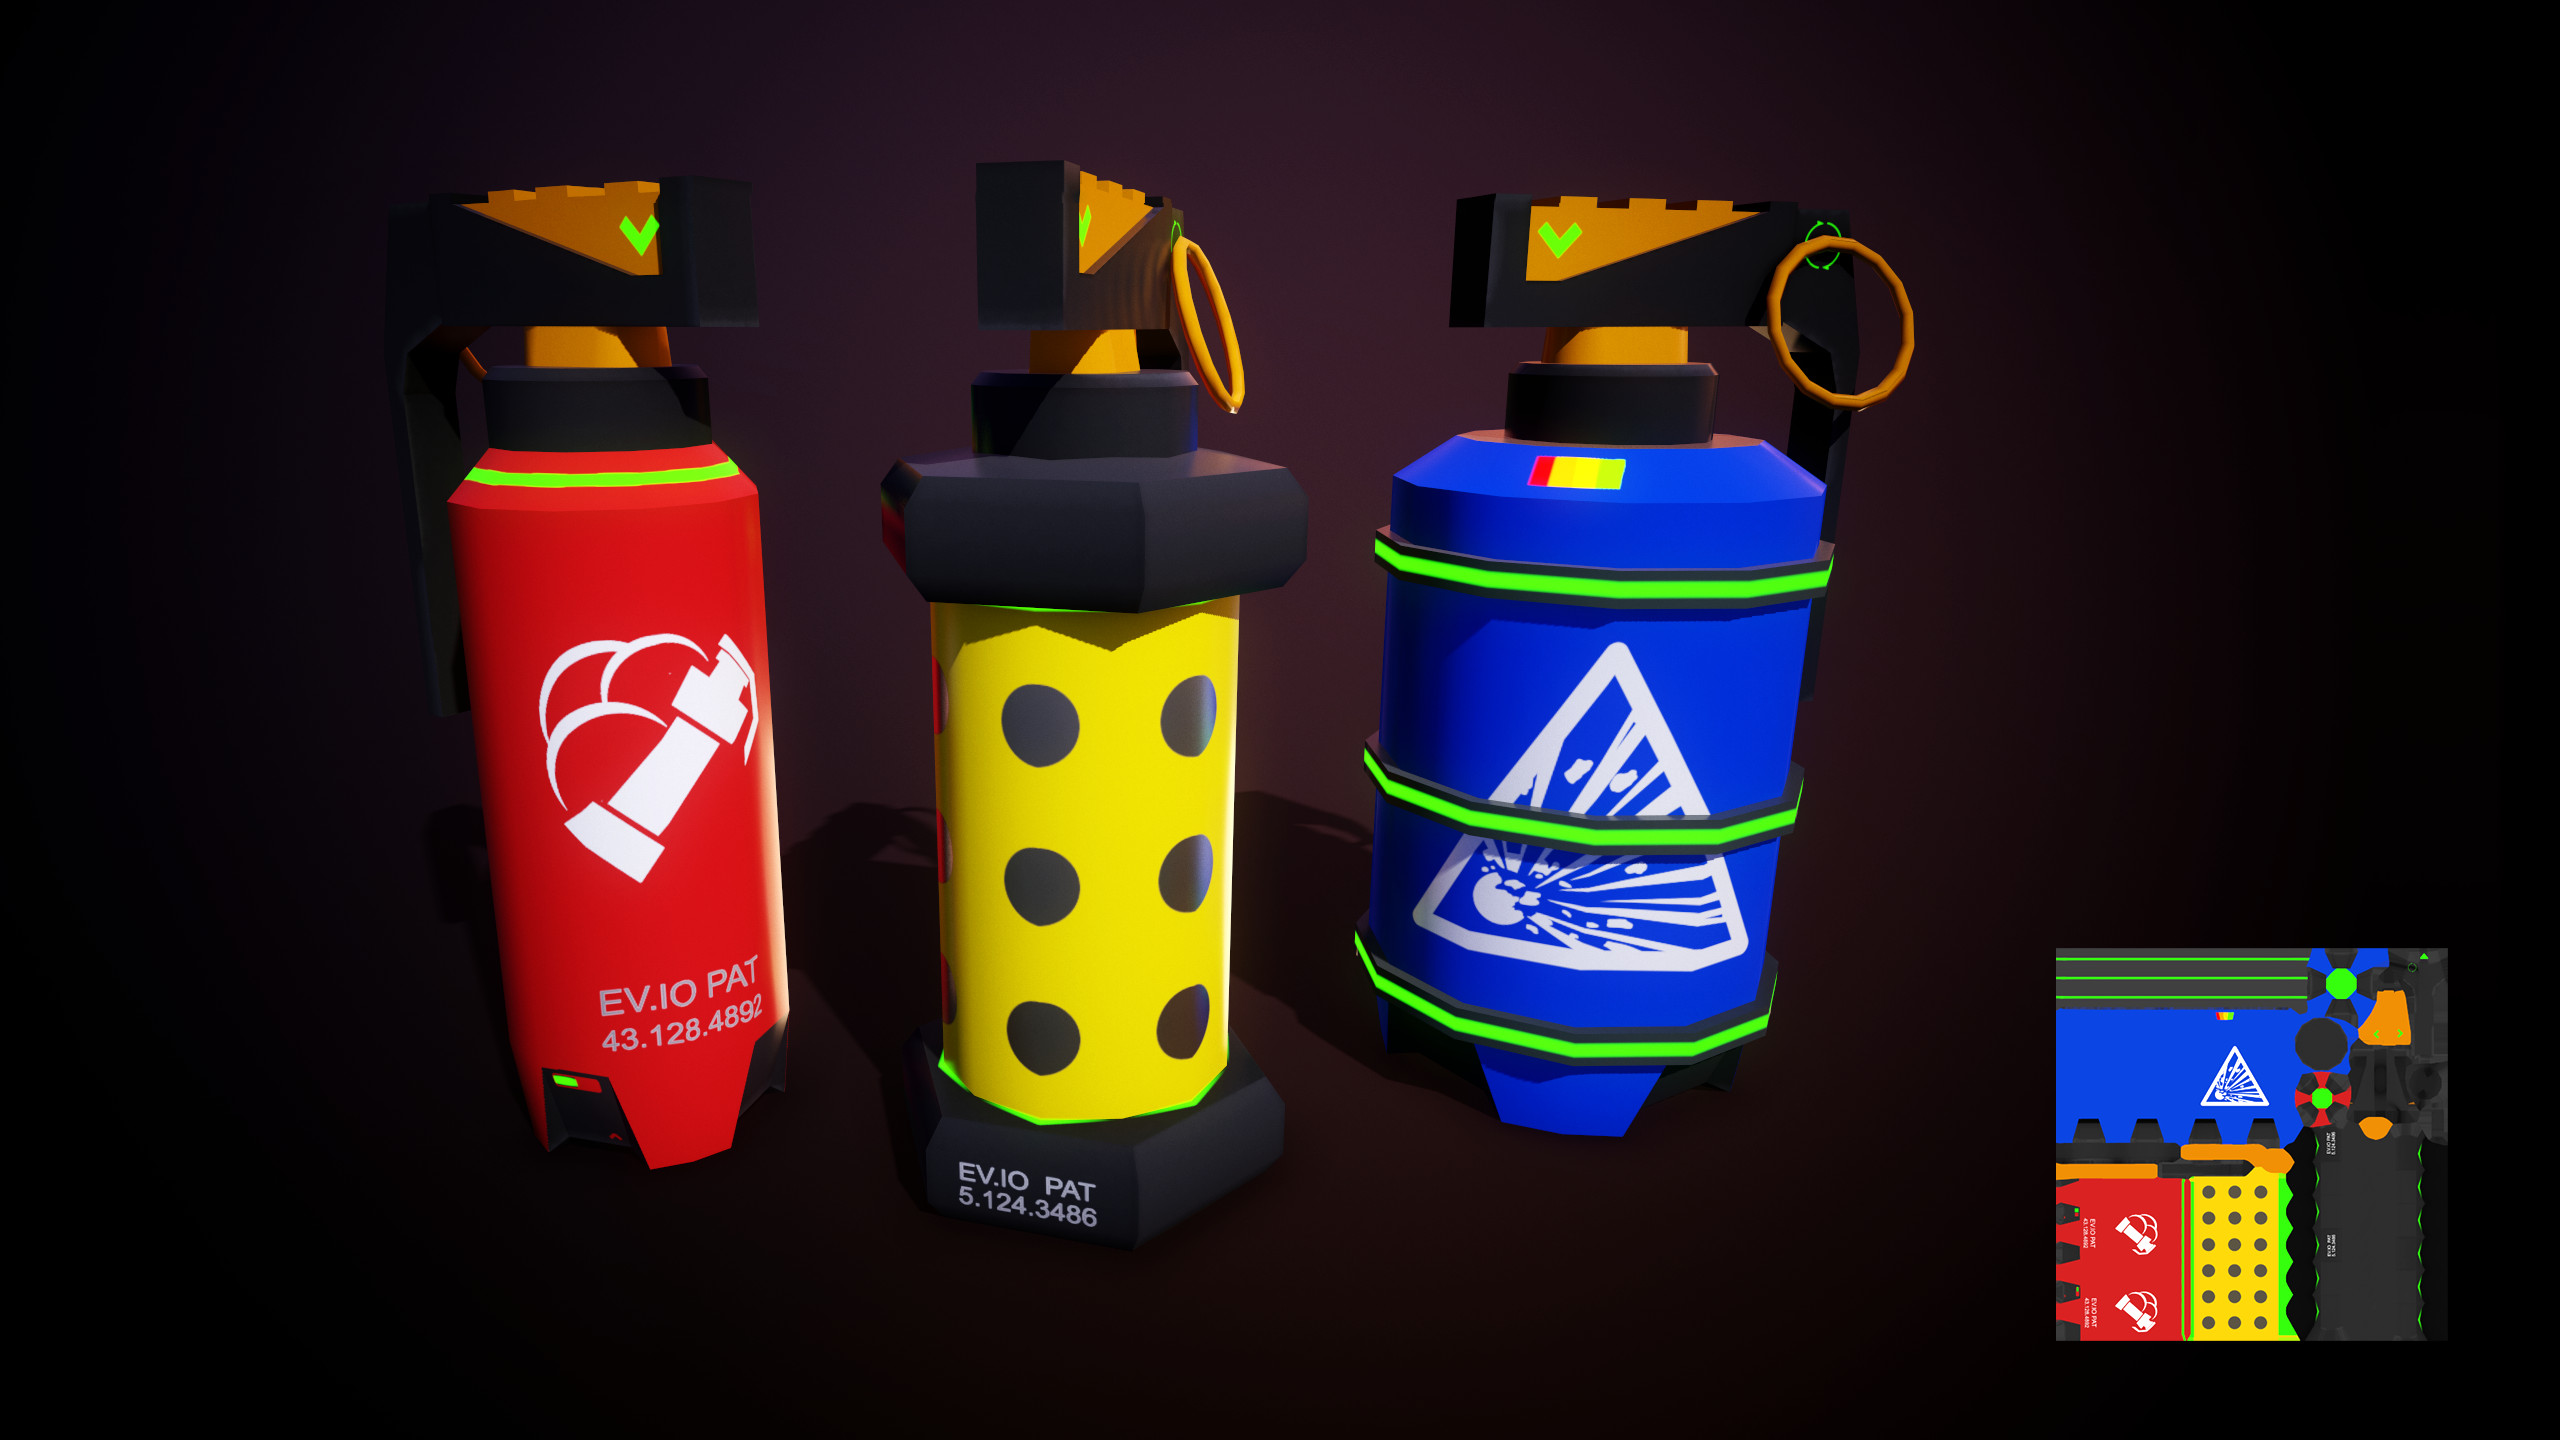 The 3 grenade types available in the game Smoke, Flash, and Fragmentation. All three were created with a single shared 512 basecolor texture.